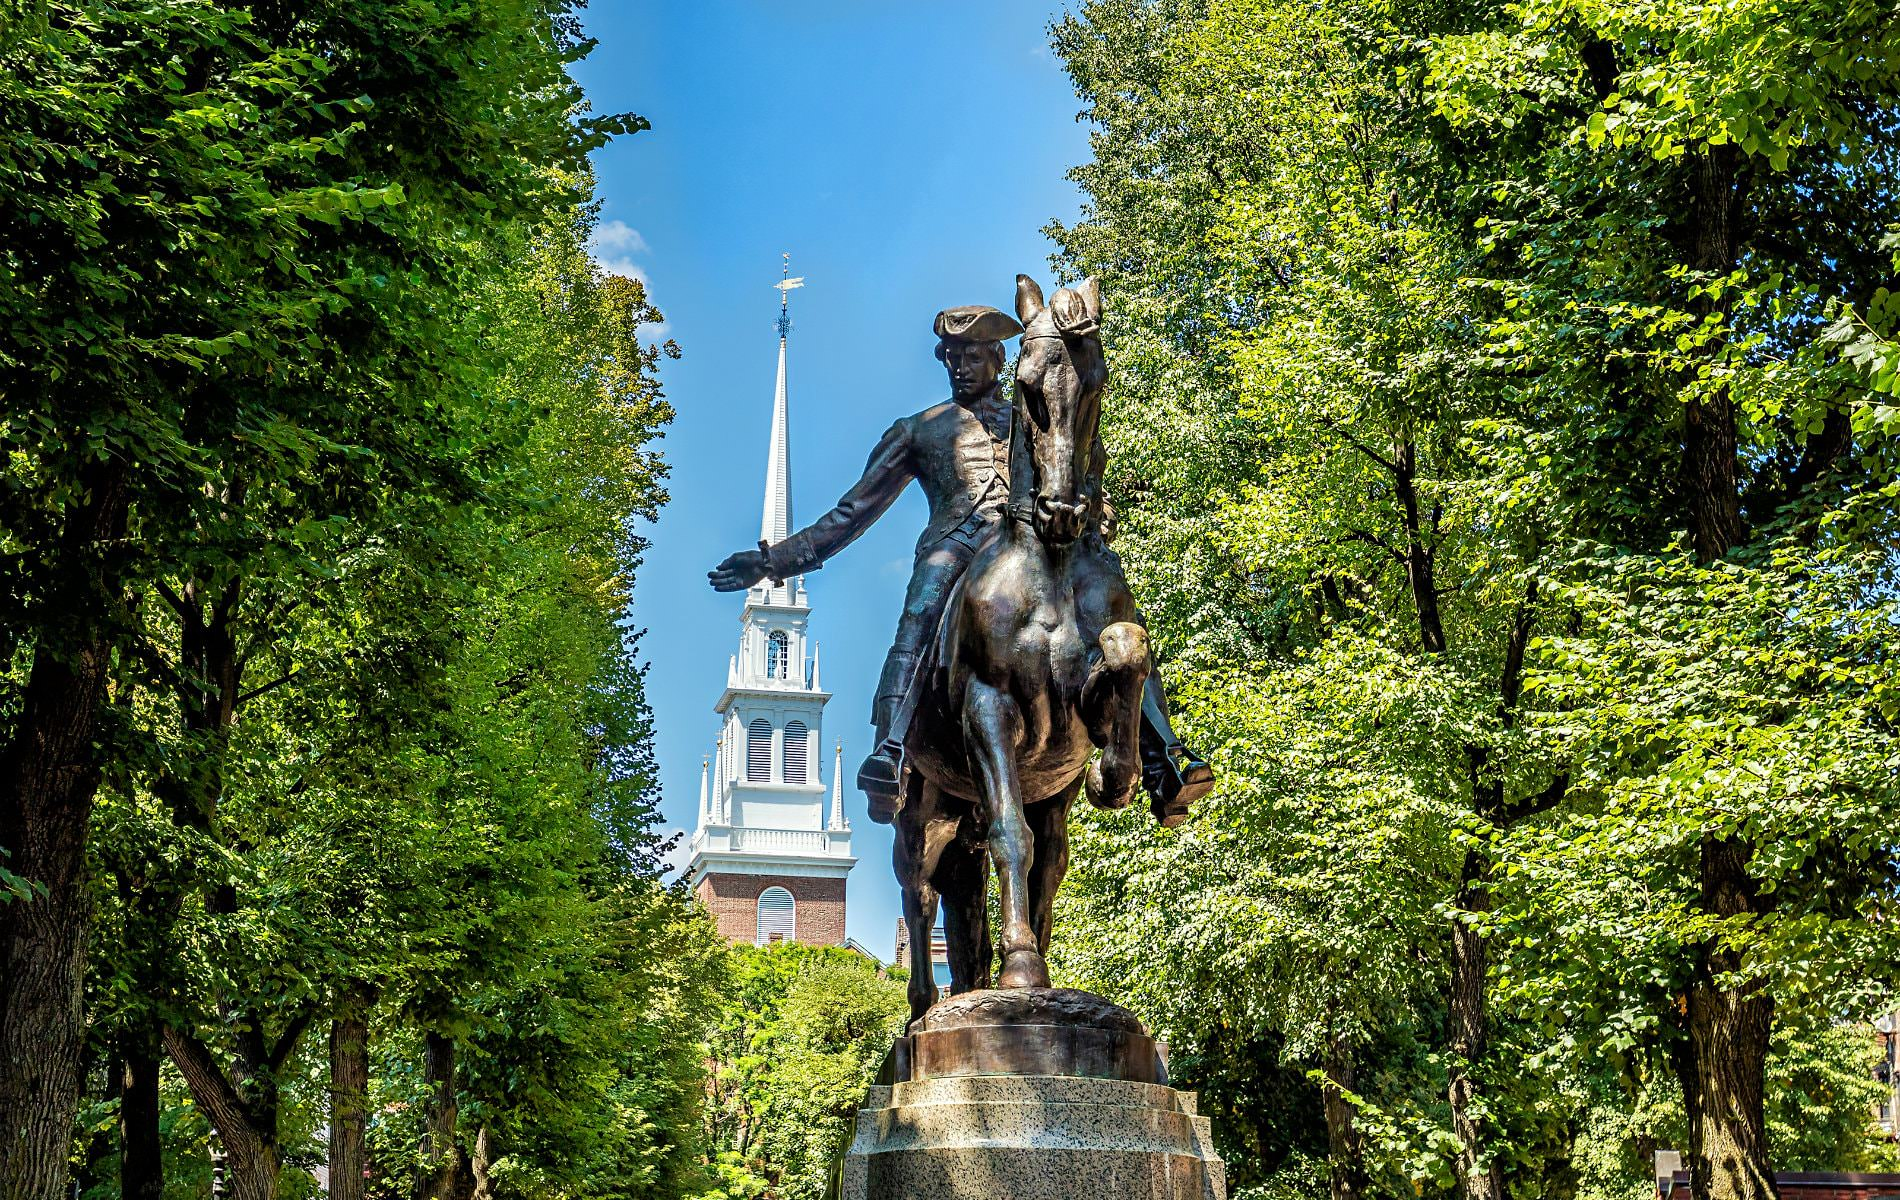 Statue of Paul Revere surrounding by lush green trees with blue skies and a white steeple in the background